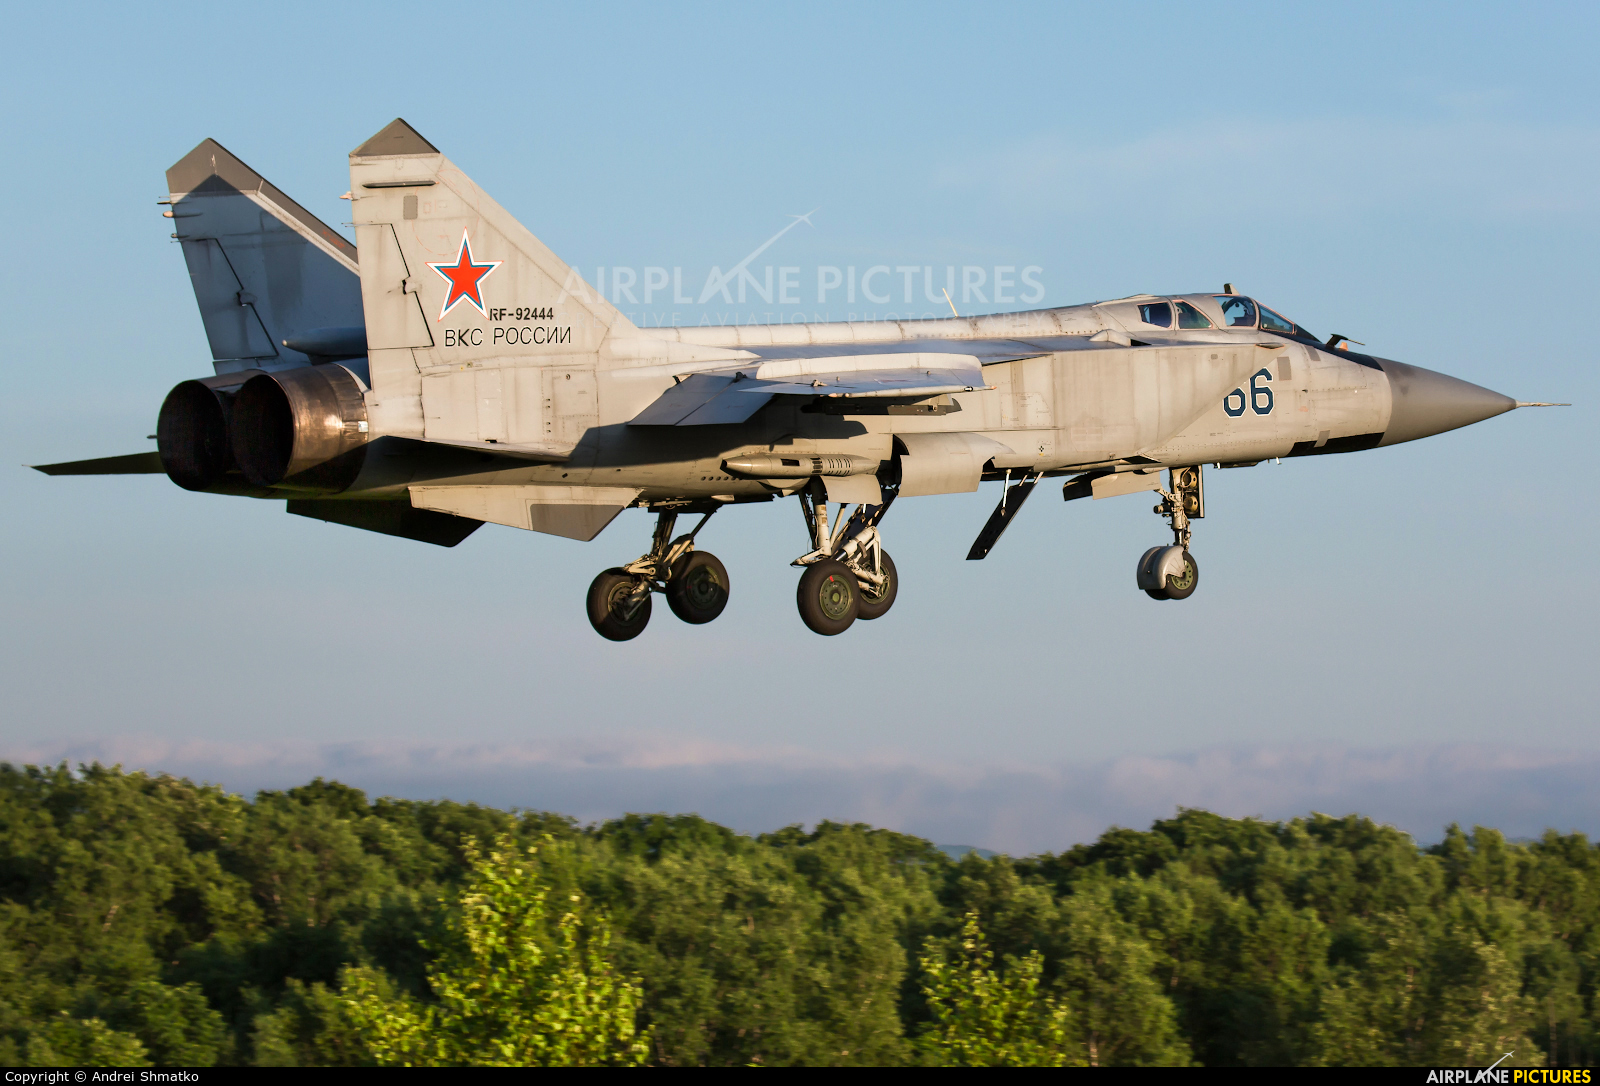 Russia - Air Force RF-92444 aircraft at Undisclosed Location